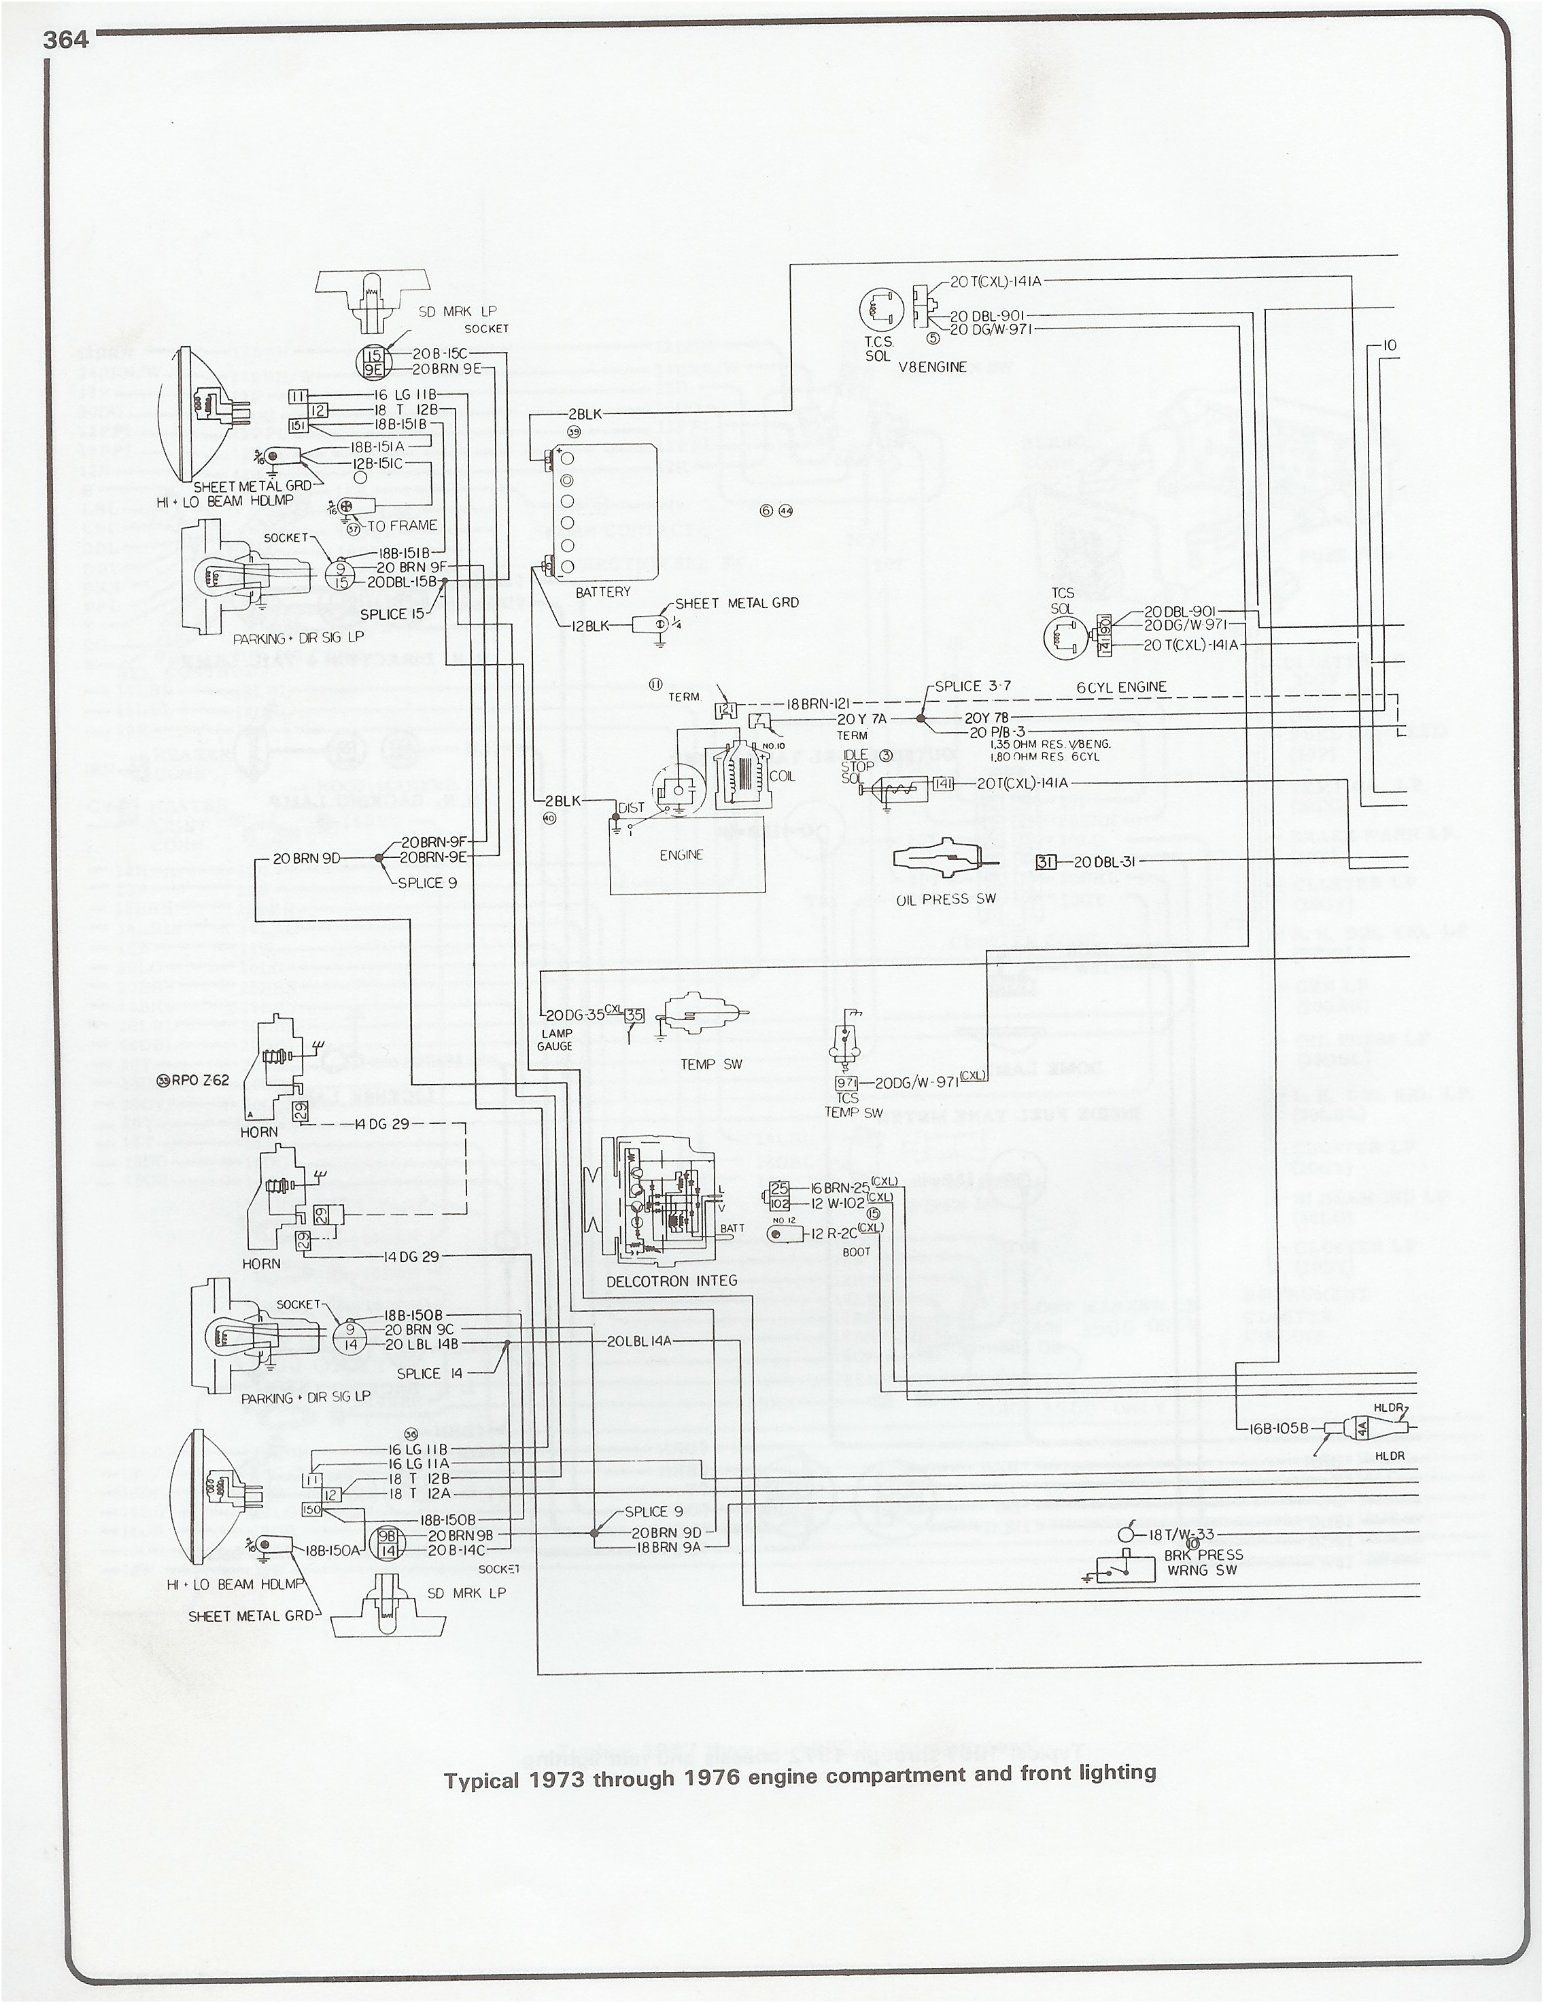 small resolution of chevy truck rear axle diagram on chevy 350 oil pressure valve chevy silverado ac system diagram